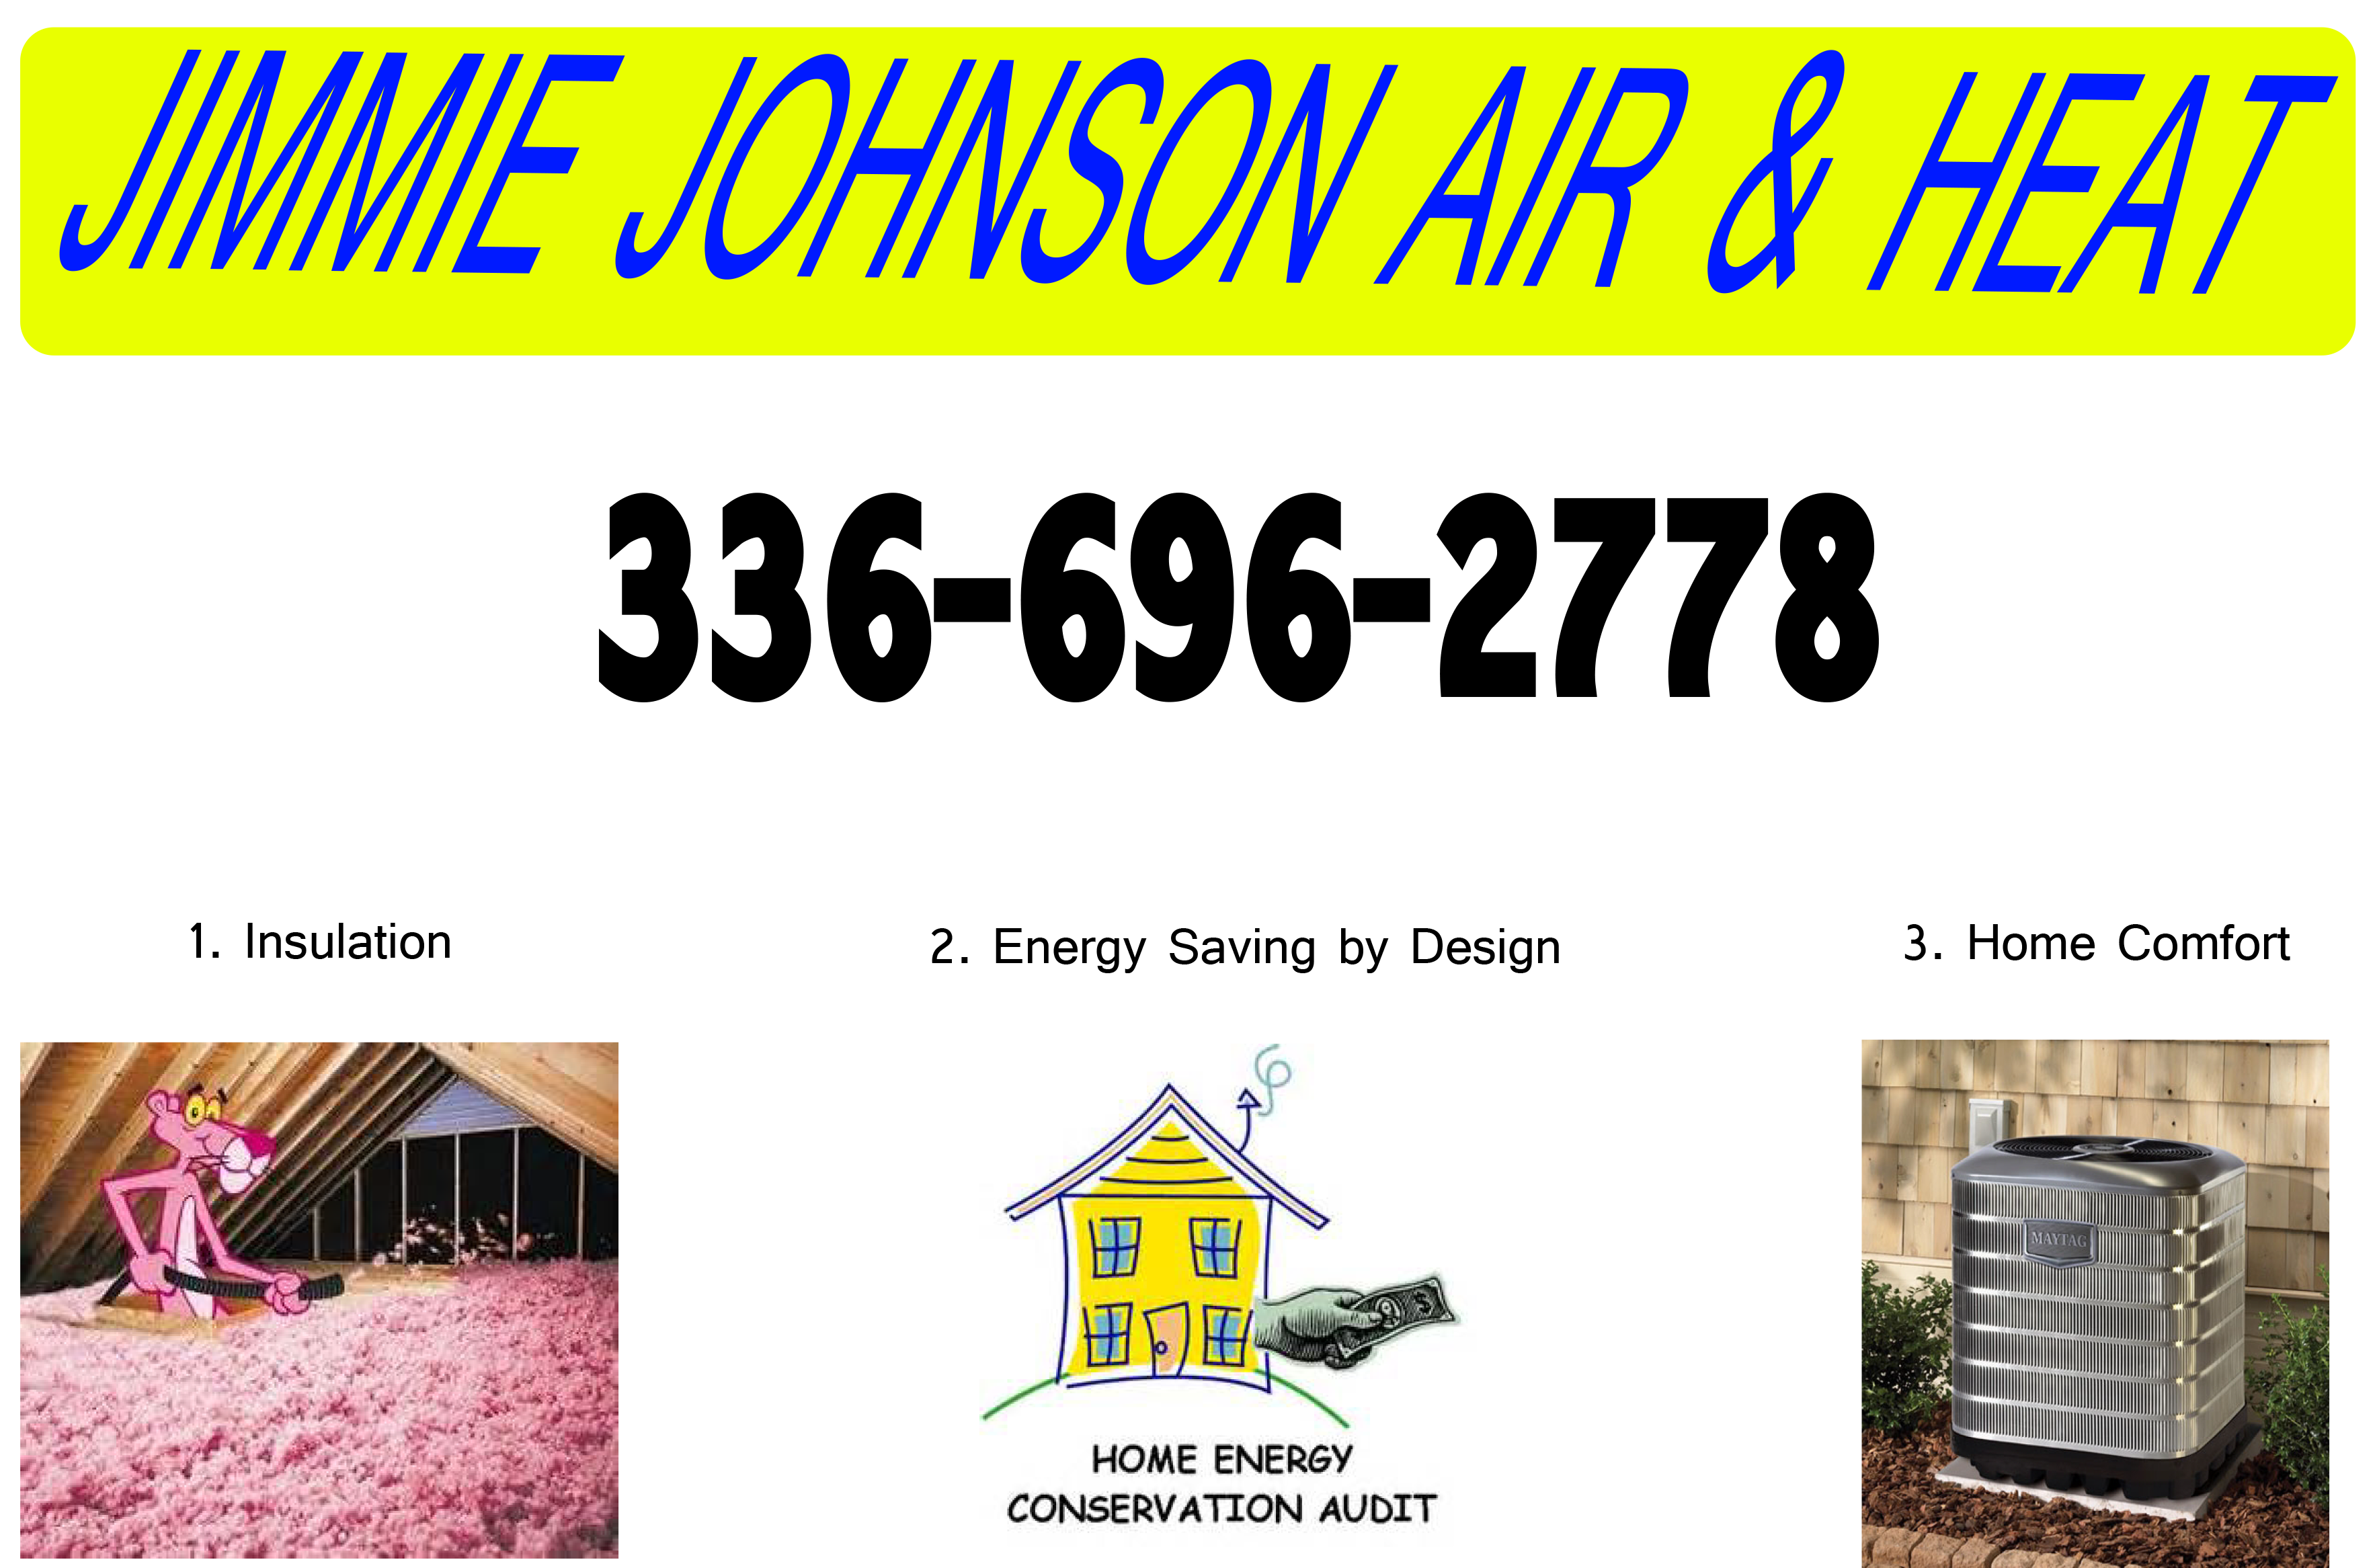 Jimmie Johnson Air and Heat of Wilkesboro NC has all of